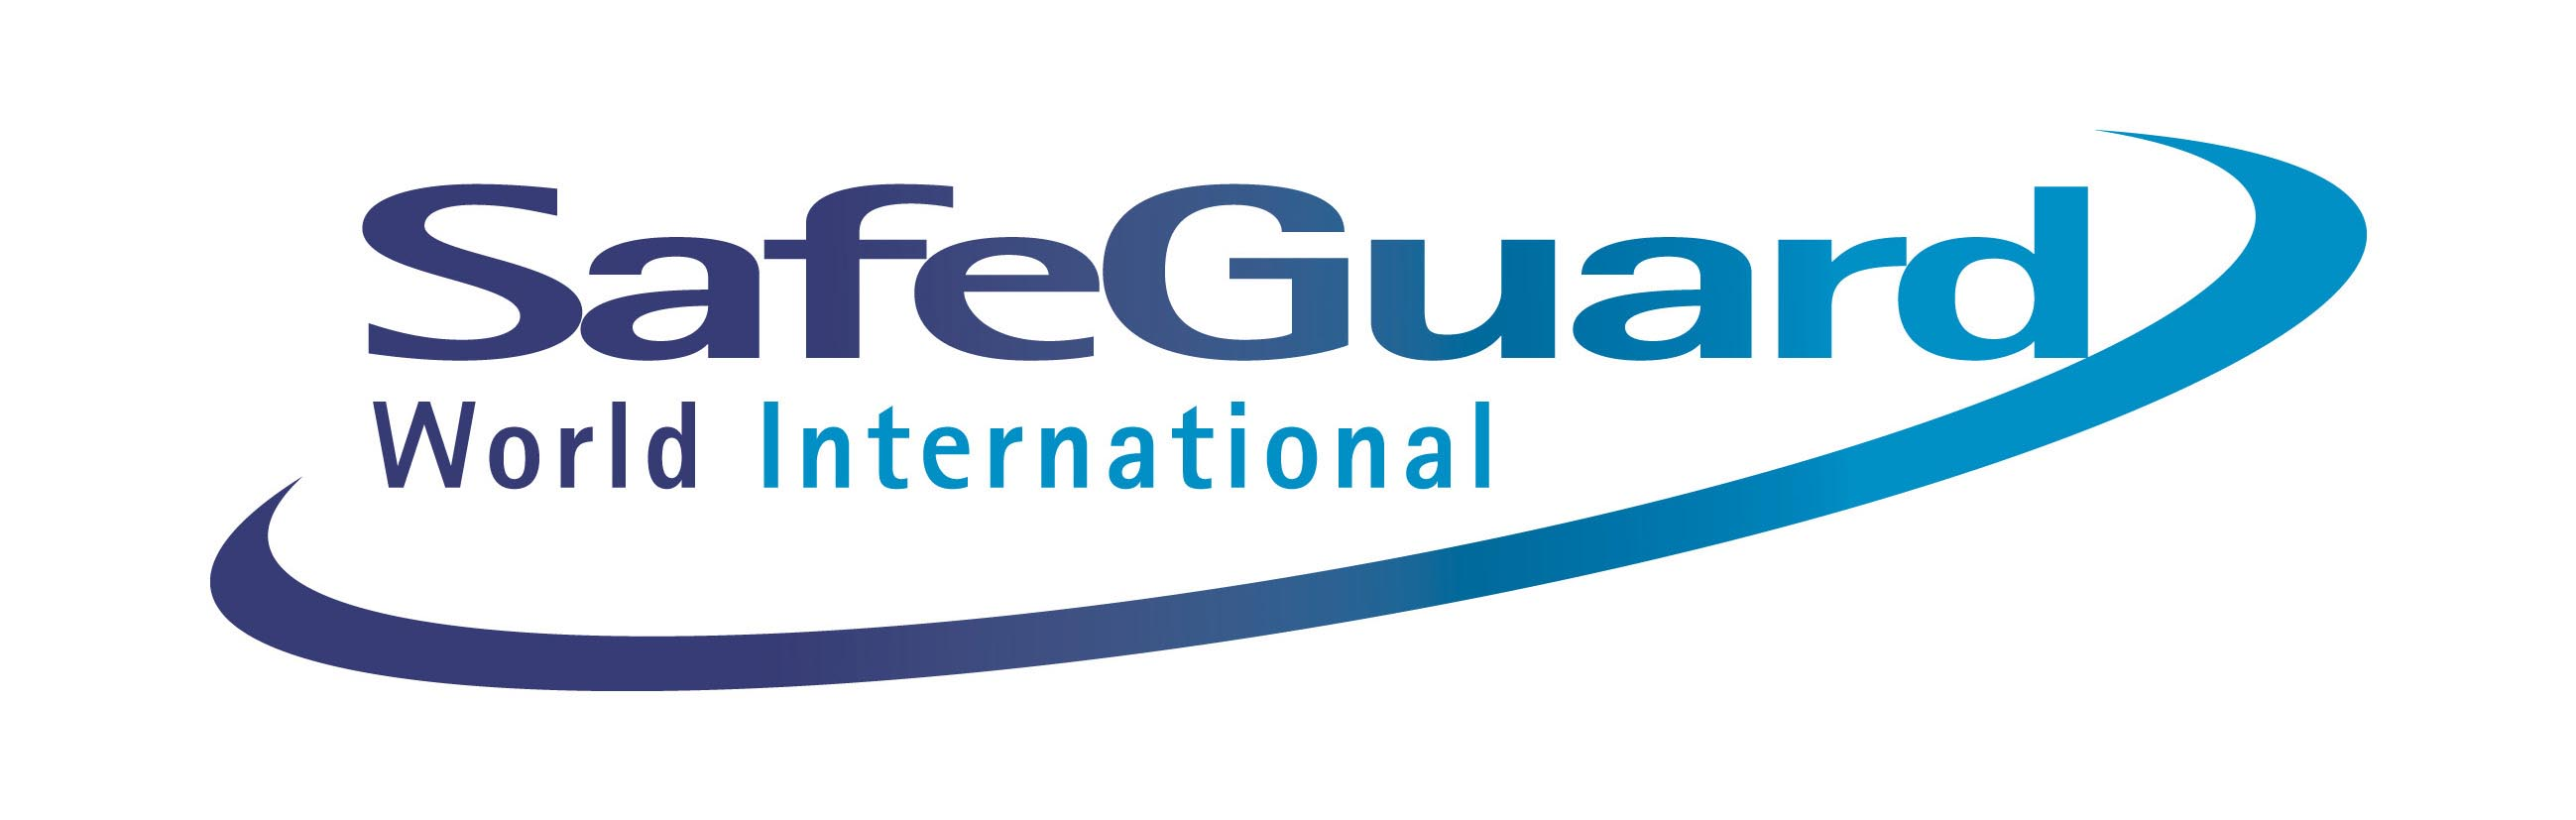 safeguard-world-international